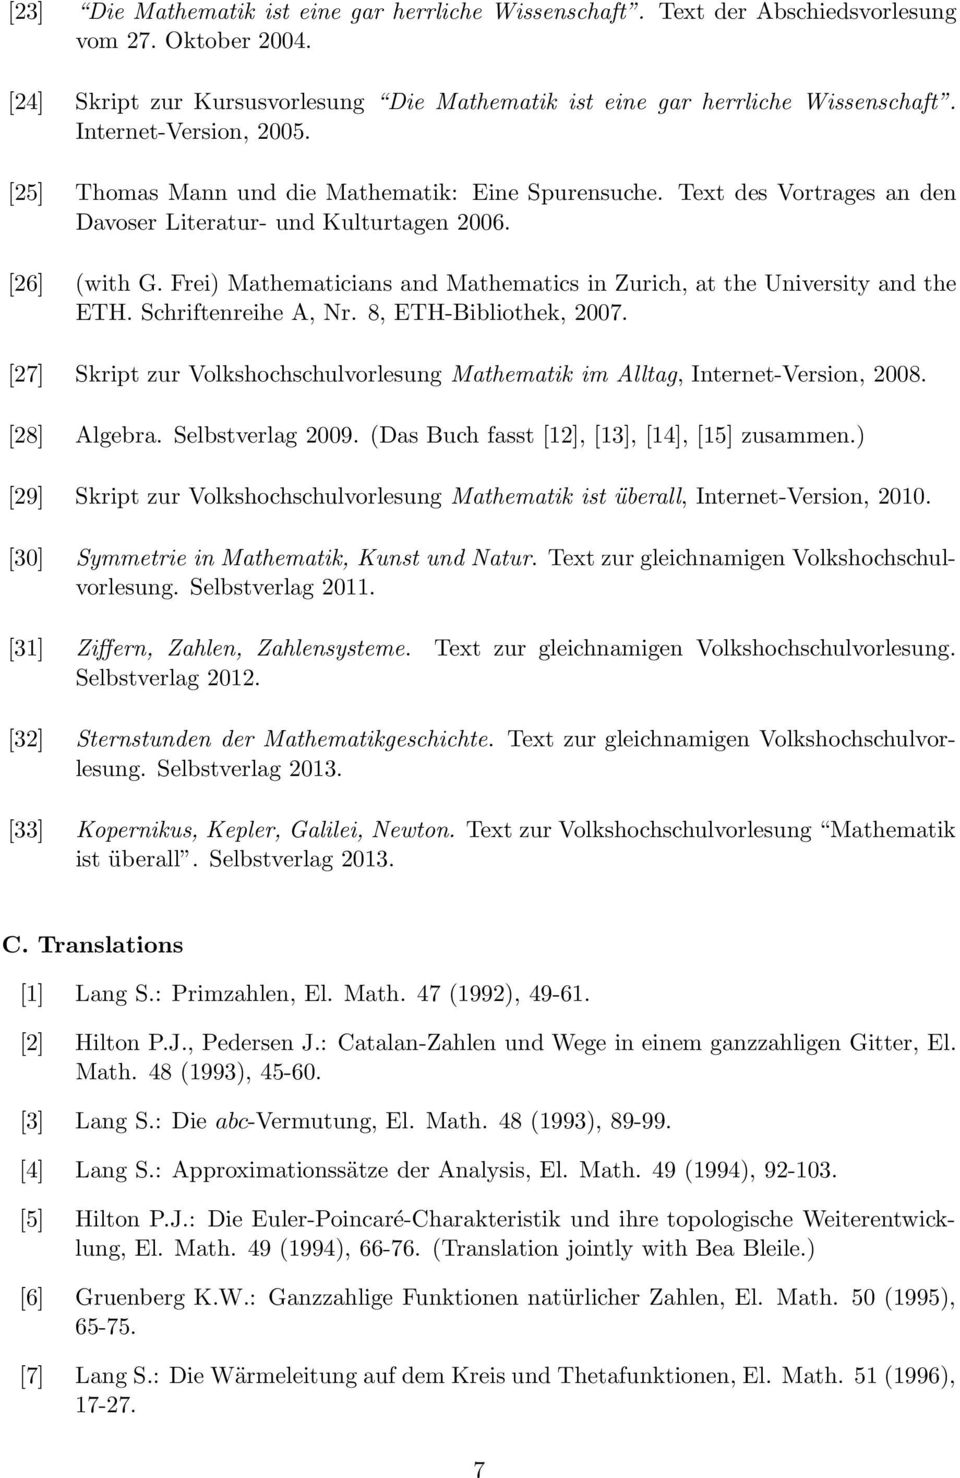 Frei) Mathematicians and Mathematics in Zurich, at the University and the ETH. Schriftenreihe A, Nr. 8, ETH-Bibliothek, 2007.